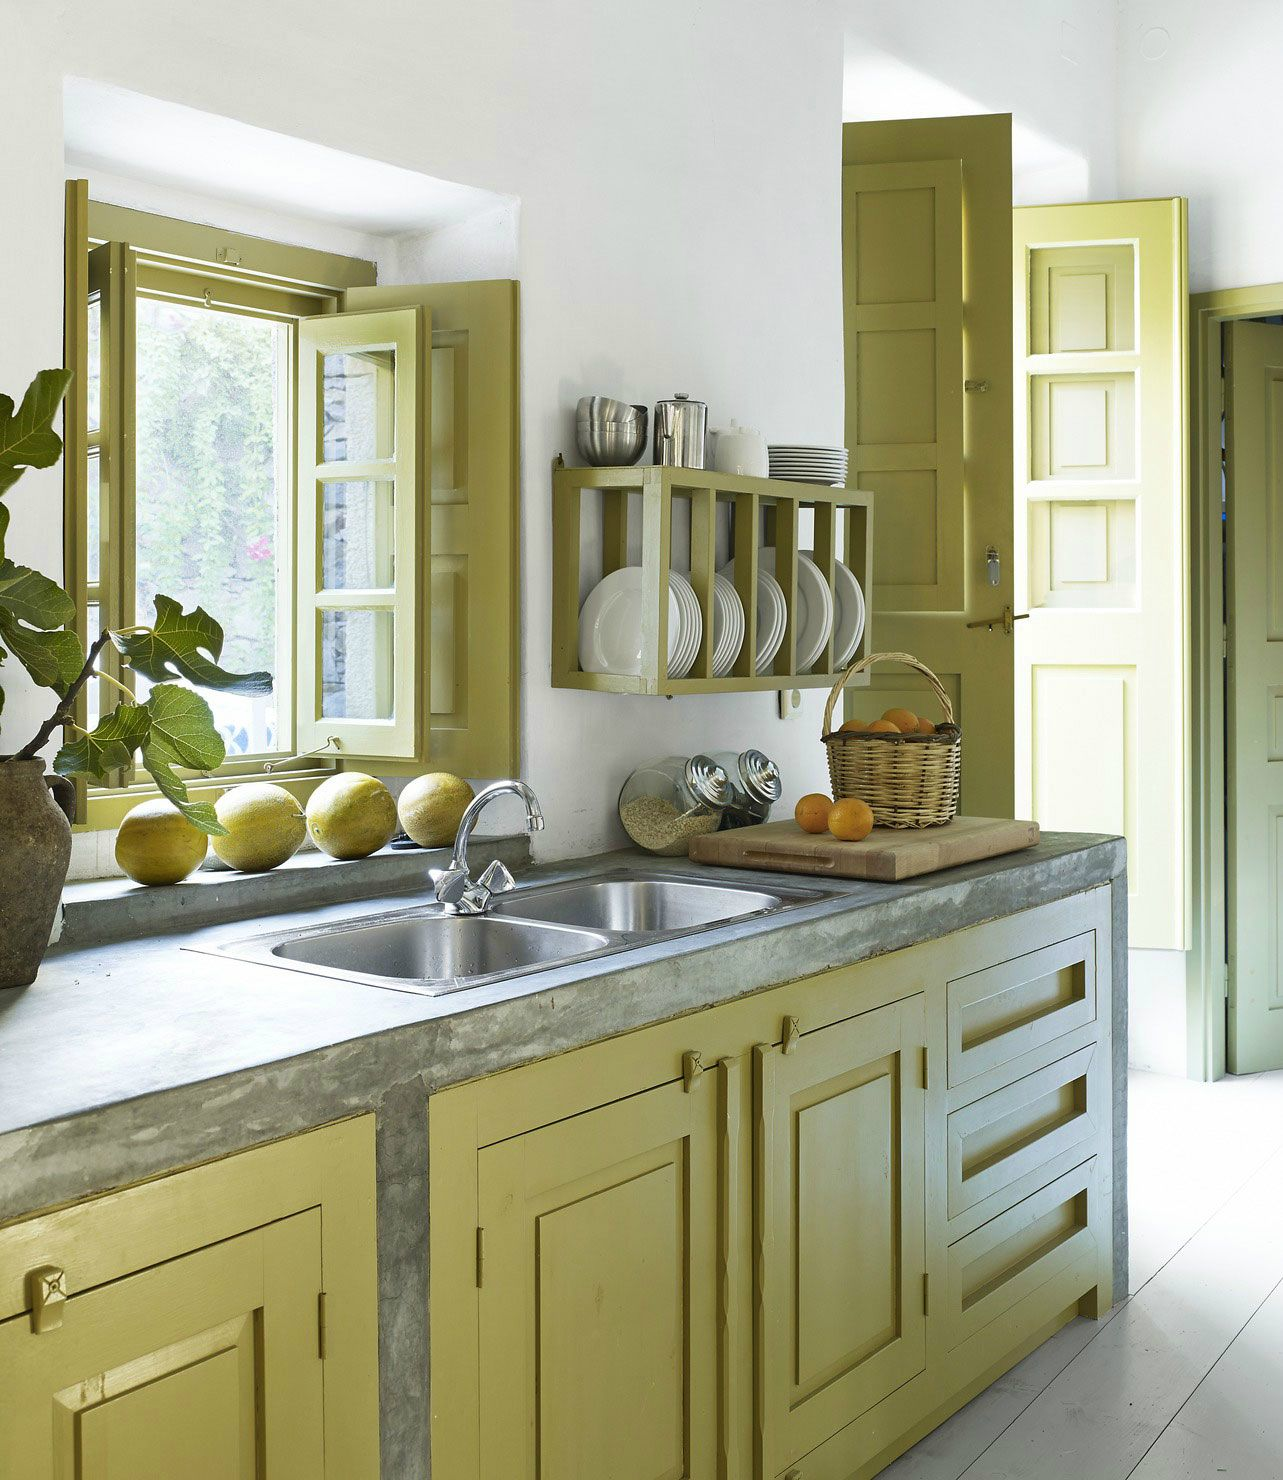 Elle decor predicts the color trends for 2017 yellow for Elle decor kitchen ideas